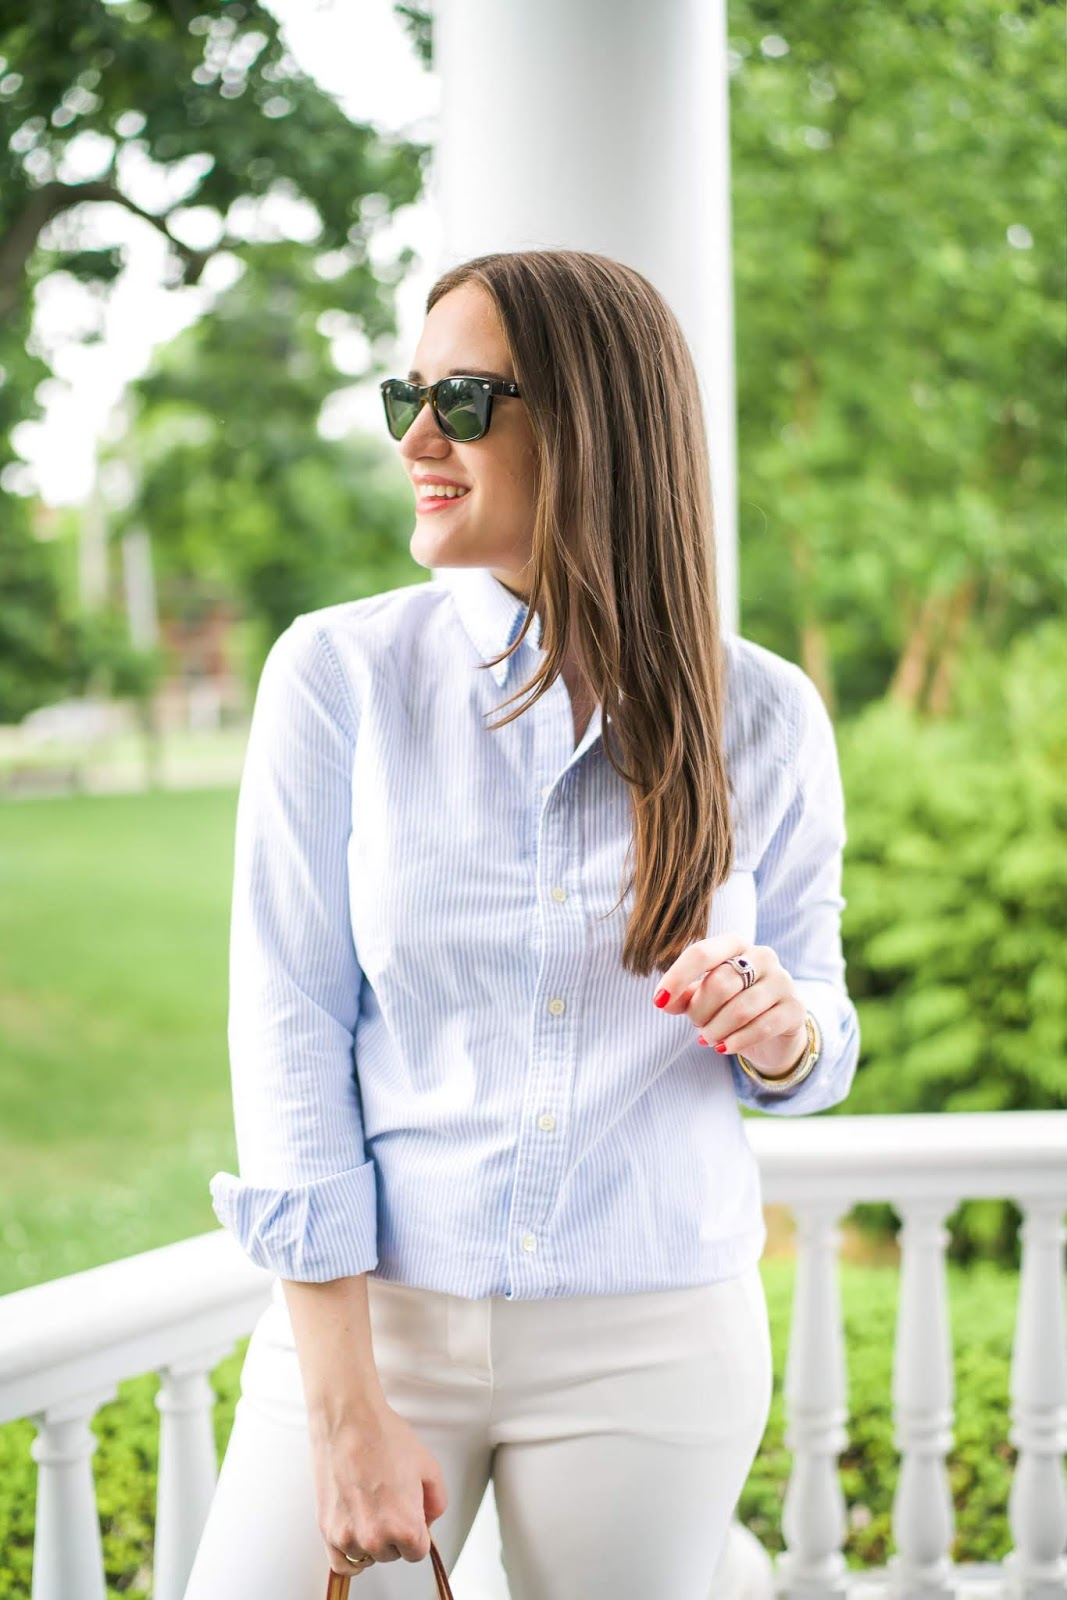 J.Crew Business Casual White Pants featured by popular New York style blogger, Covering the Bases